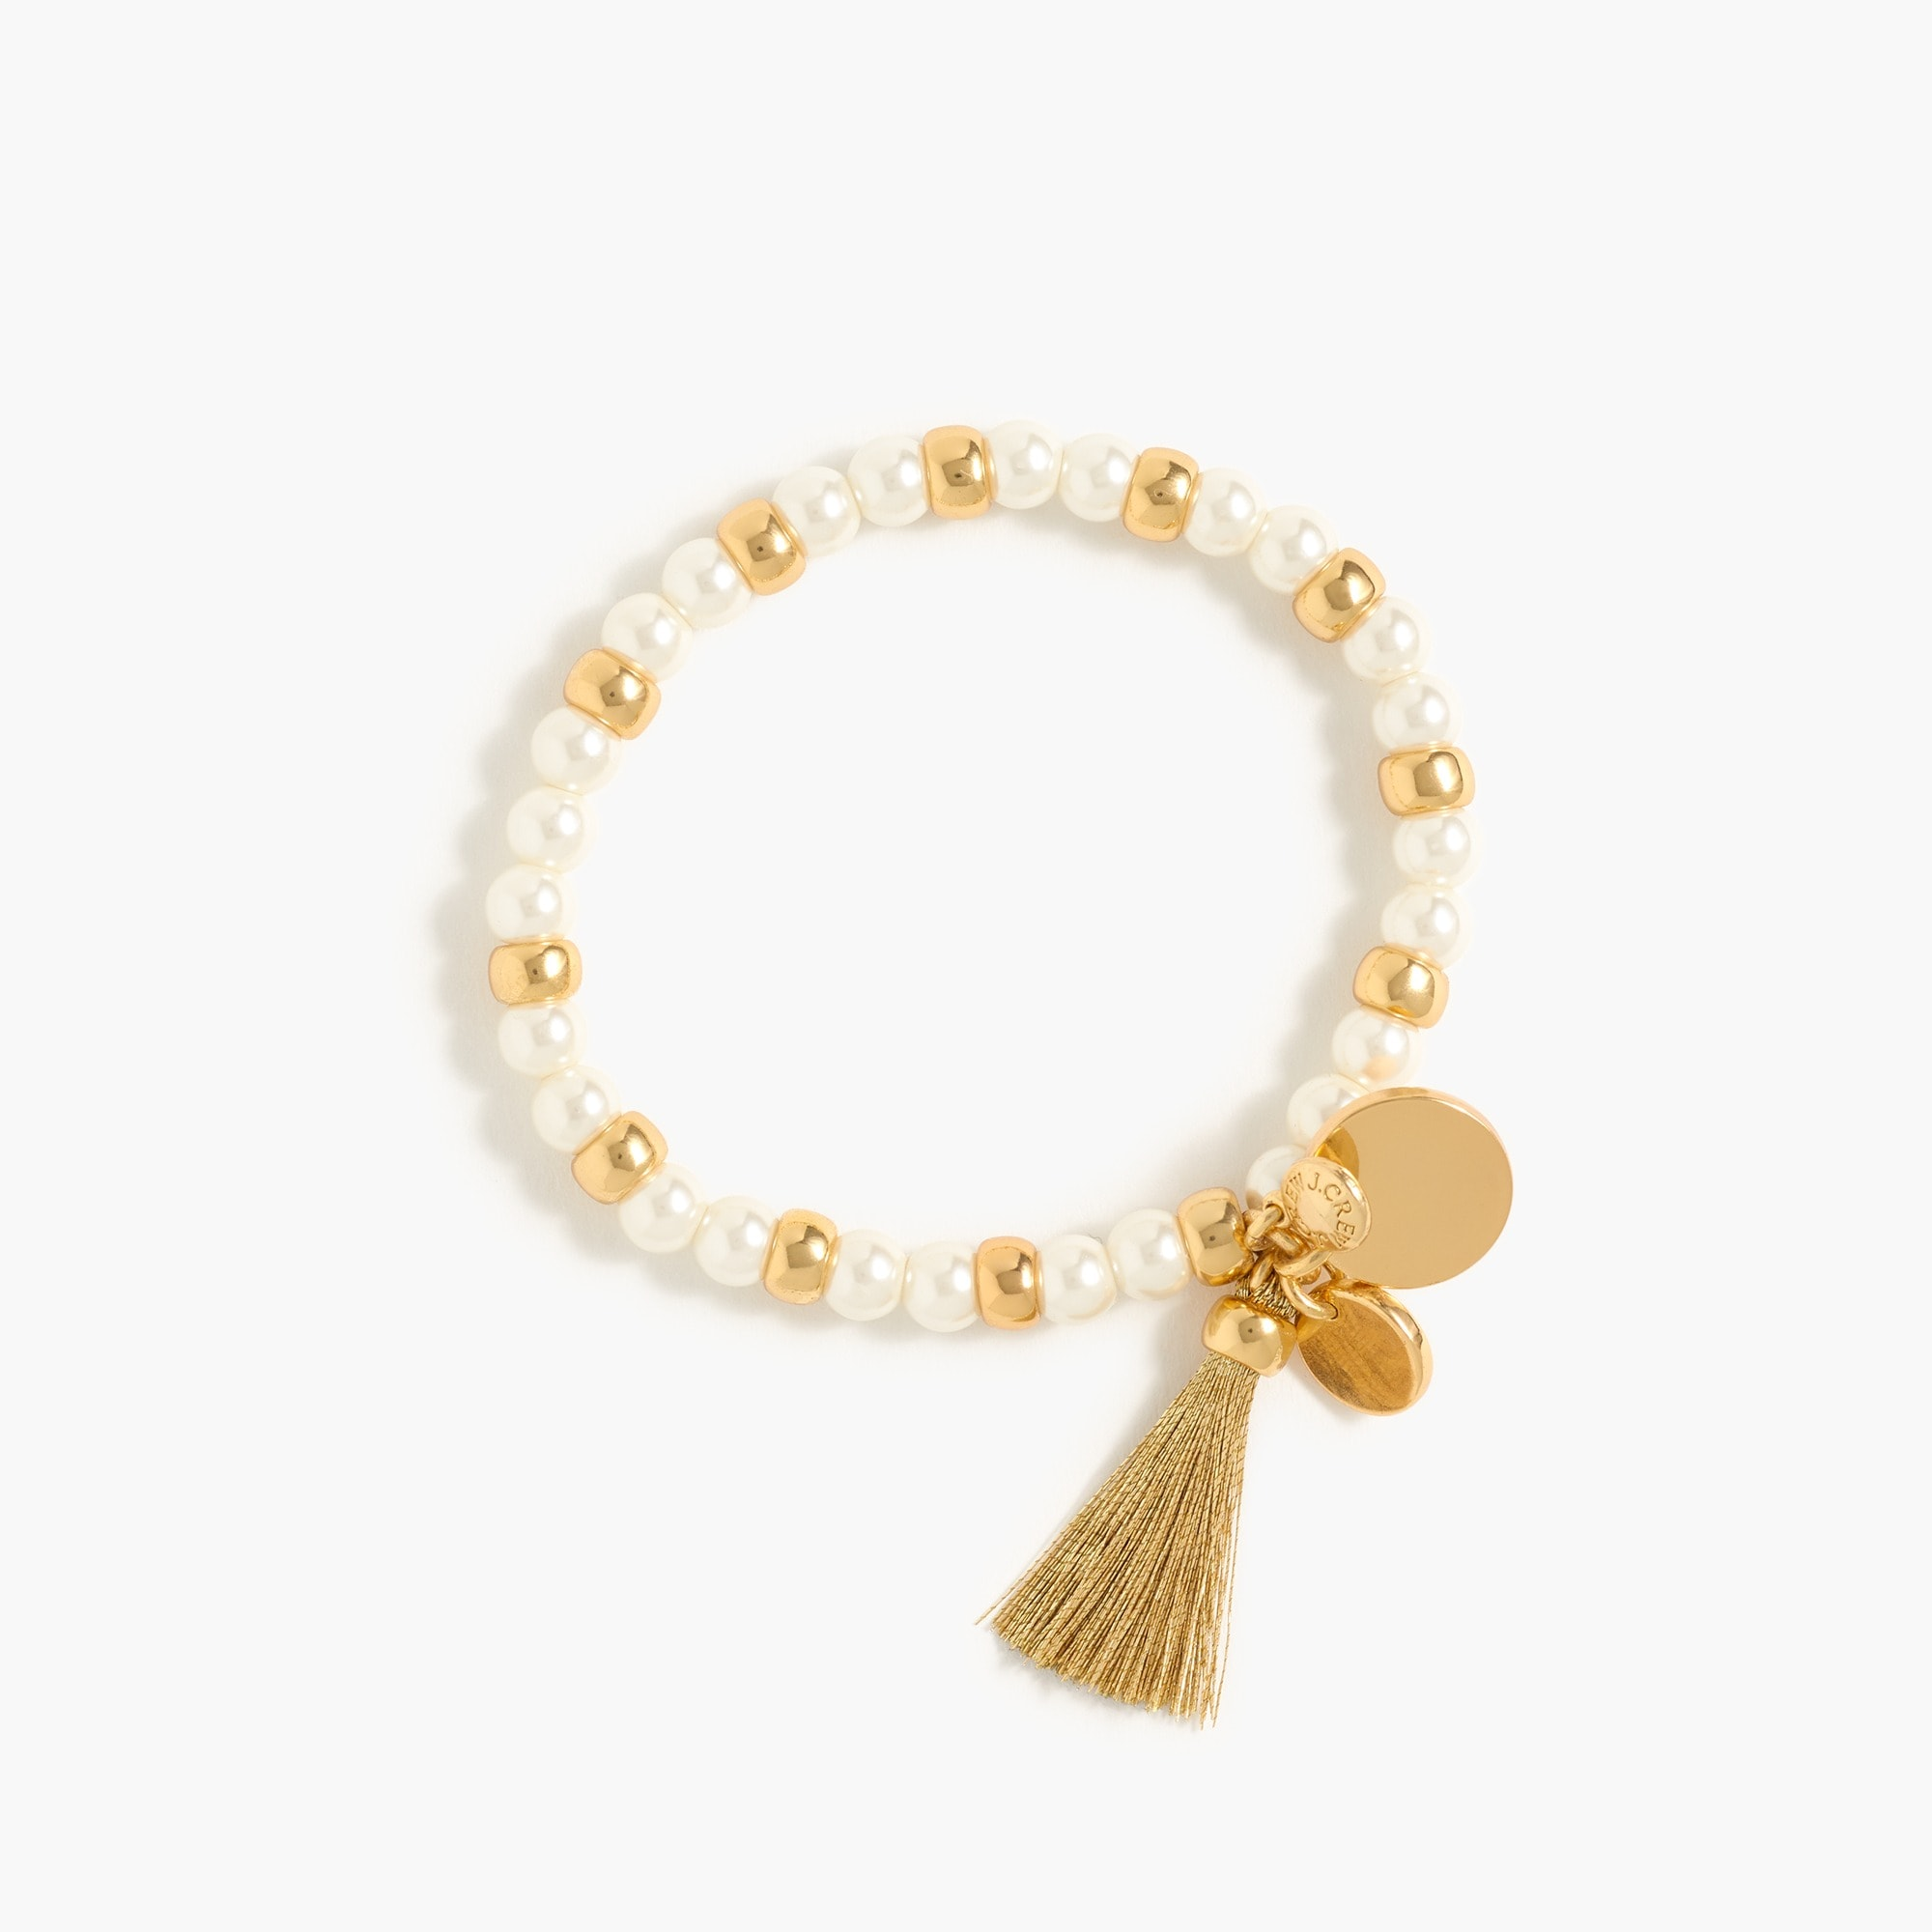 Bead and tassel stretch bracelet